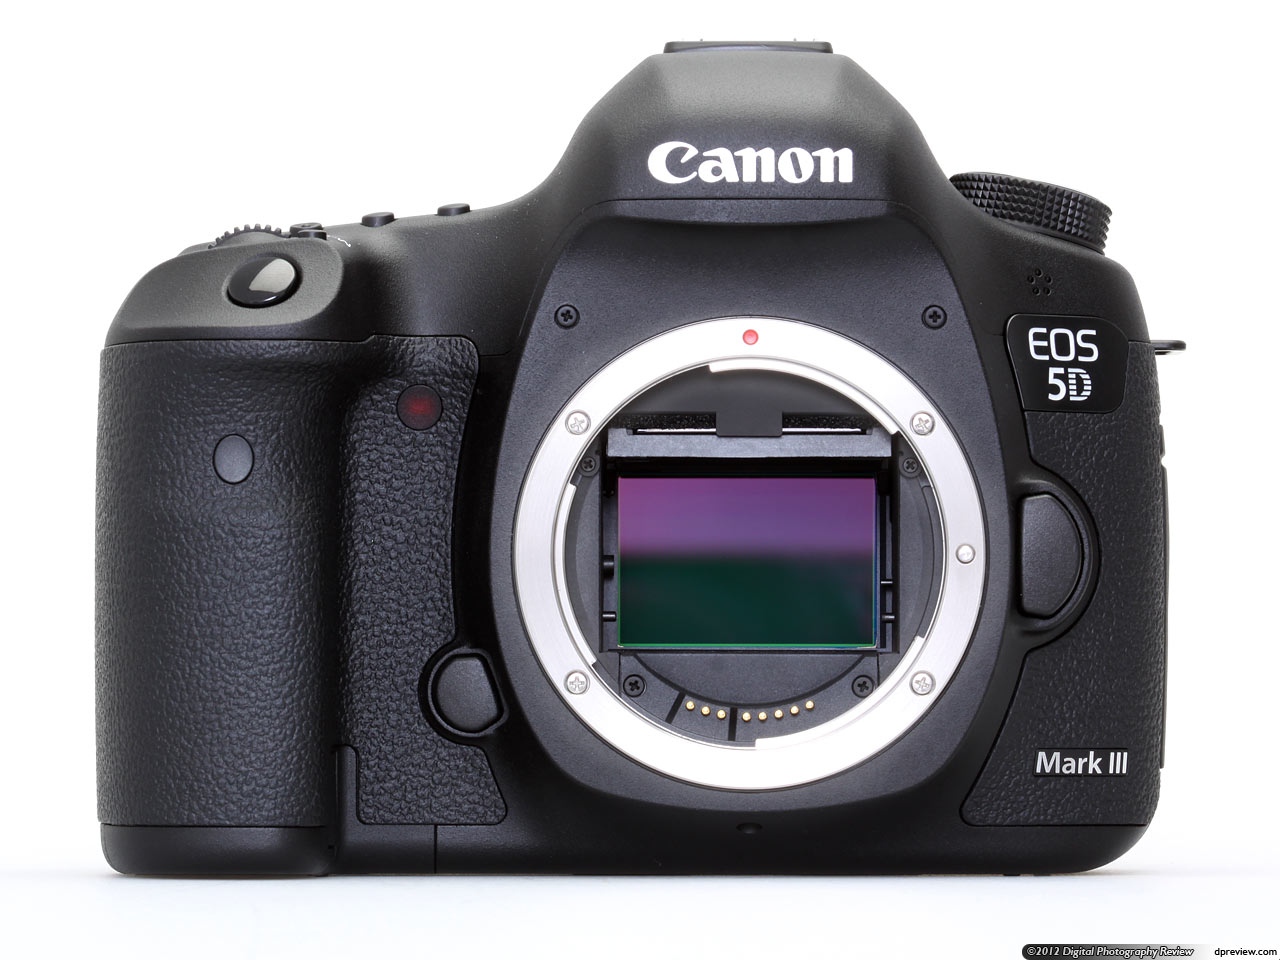 Eos 5d Mark Iii clipart #2, Download drawings